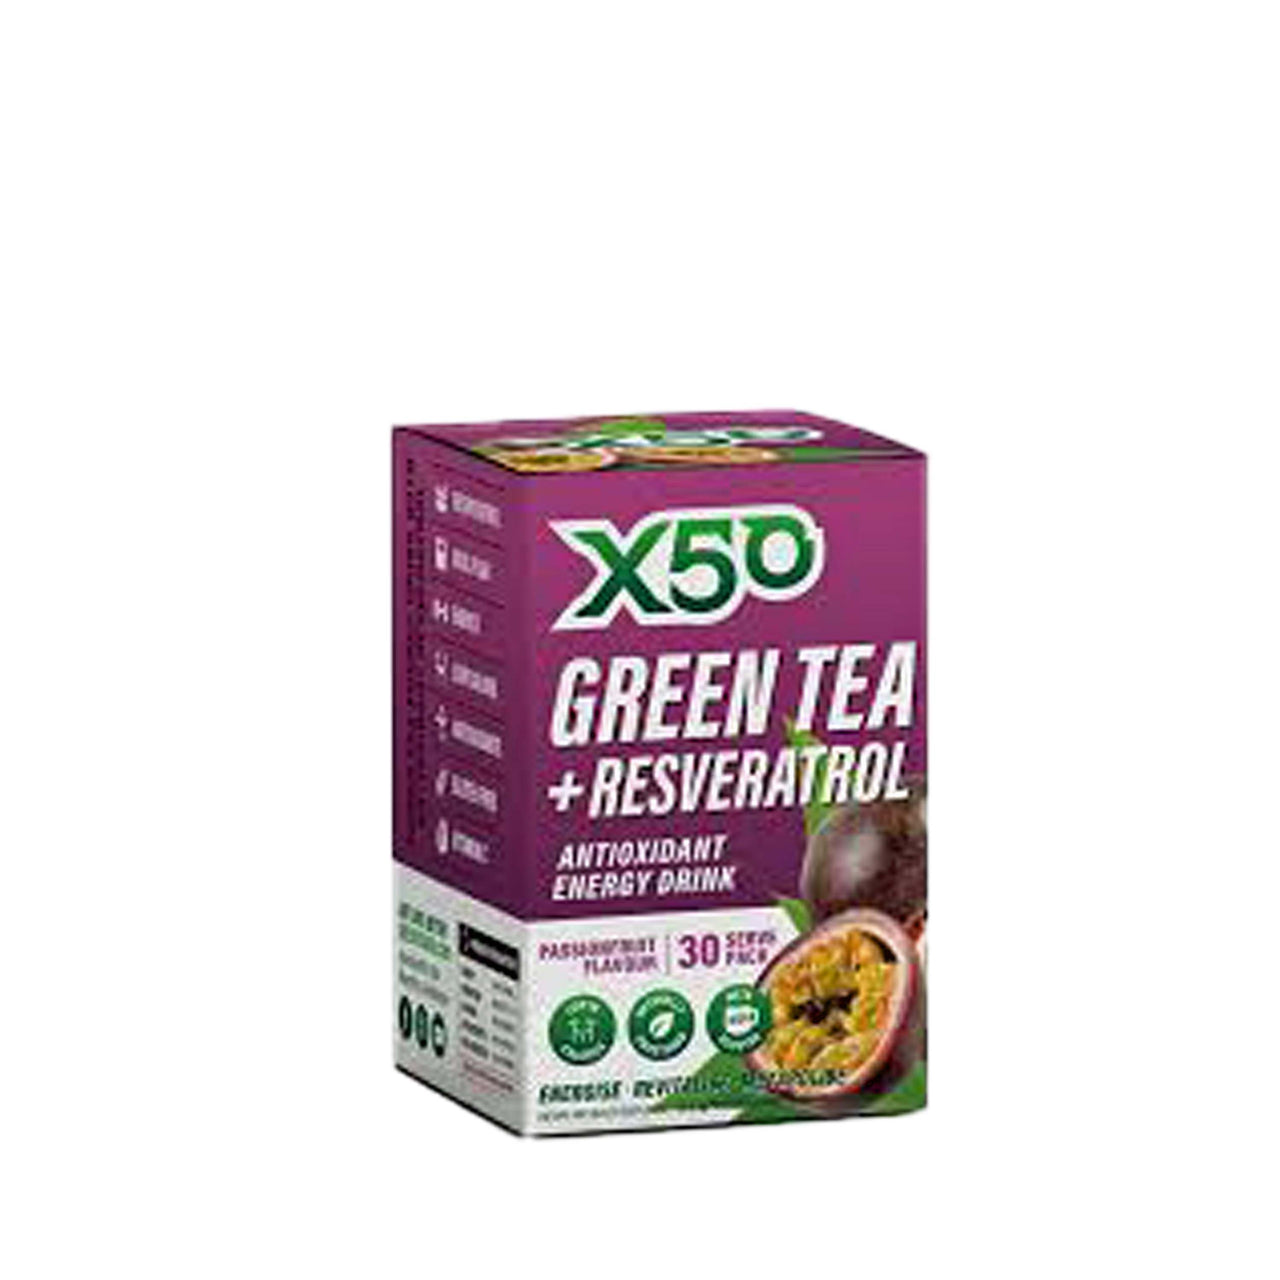 X50 Green Tea 30 Serve